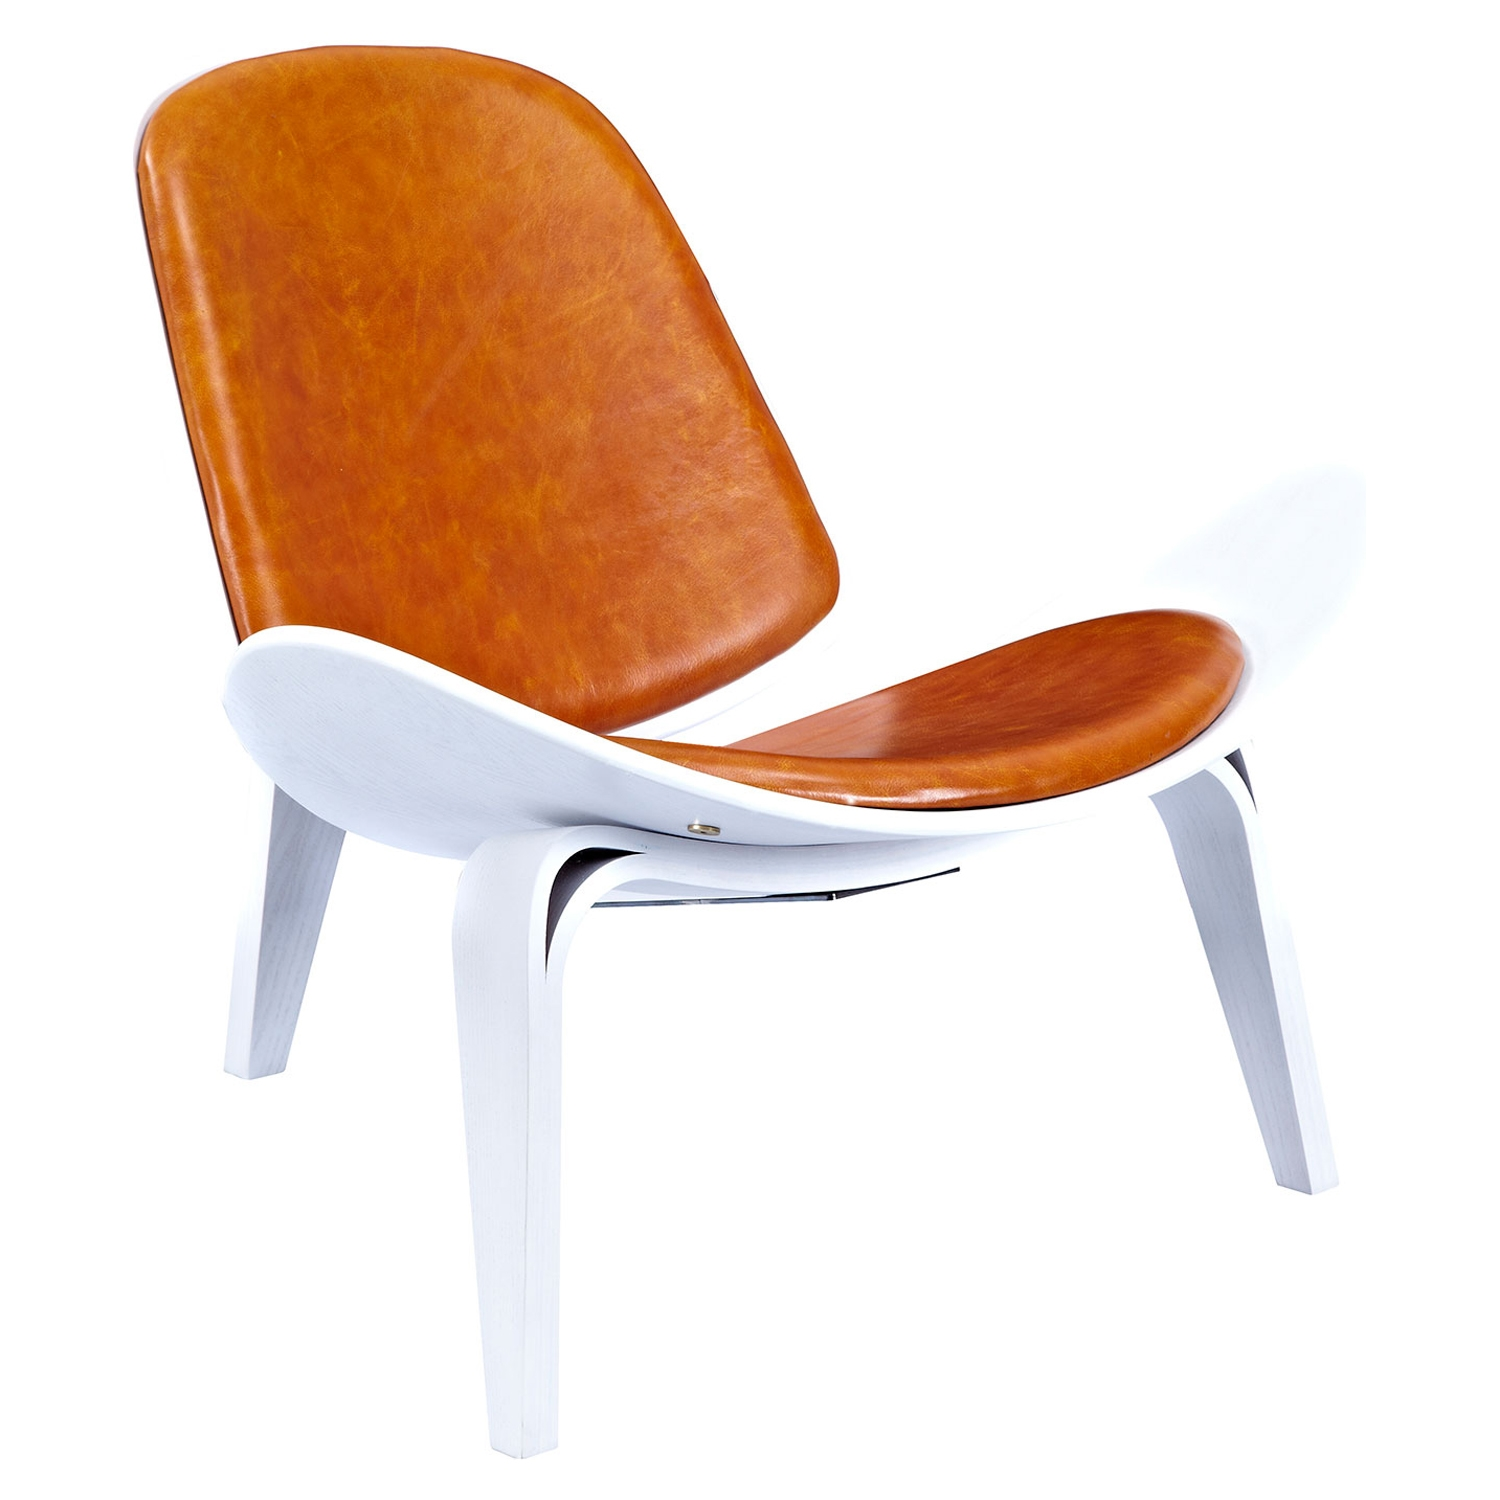 Shell Accent Chair - Burnt Orange